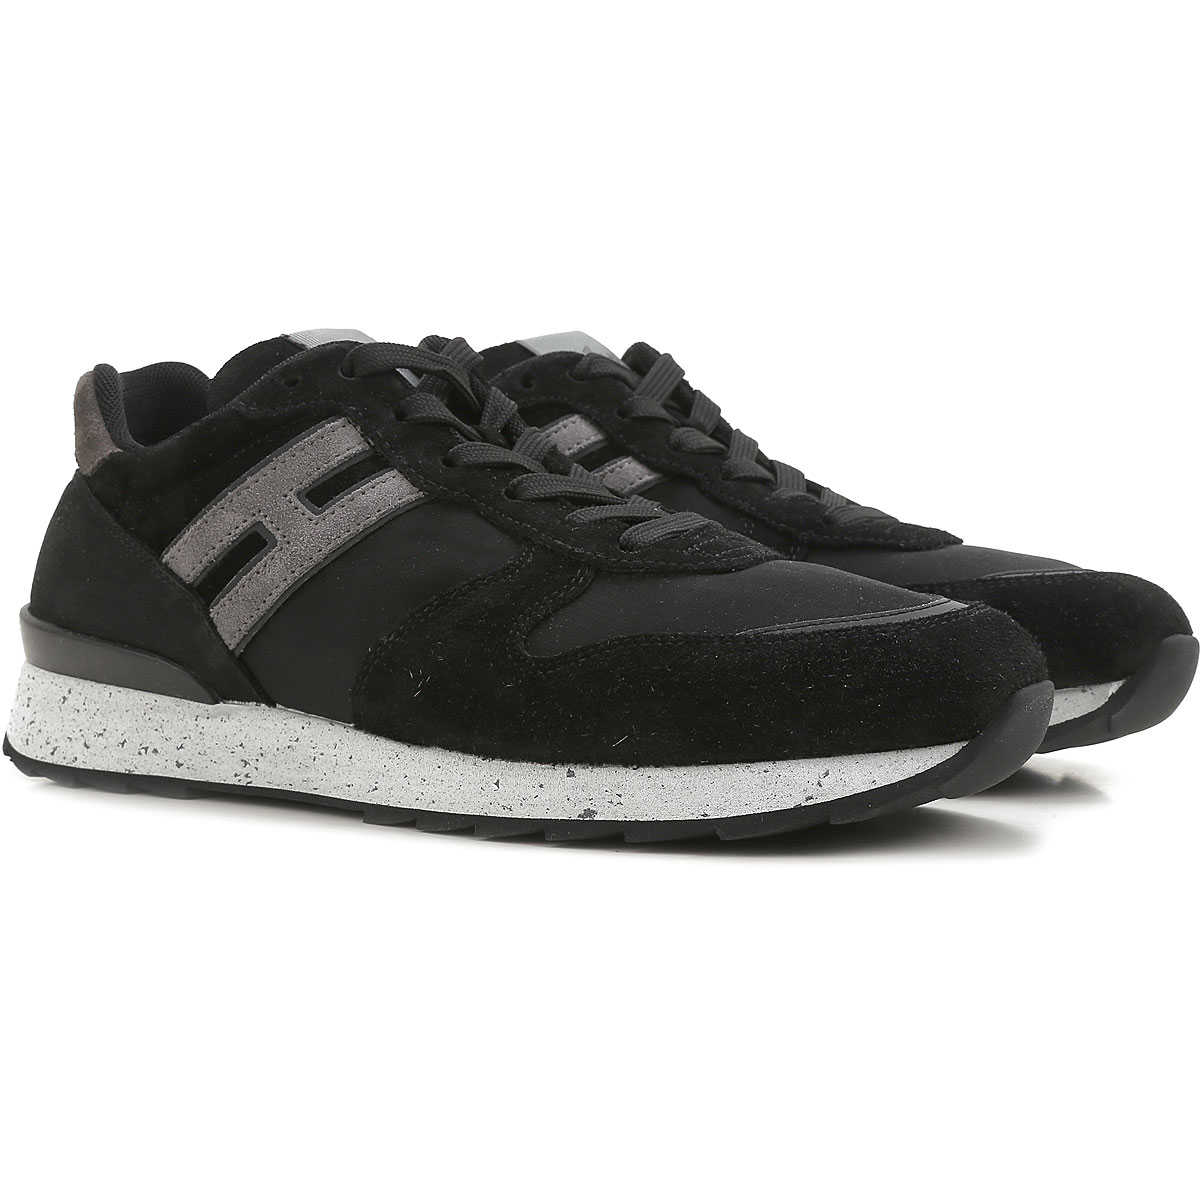 Hogan Shoes Hogan Sneakers For Men On Sale Black Suede Leather 2019 10 6 7